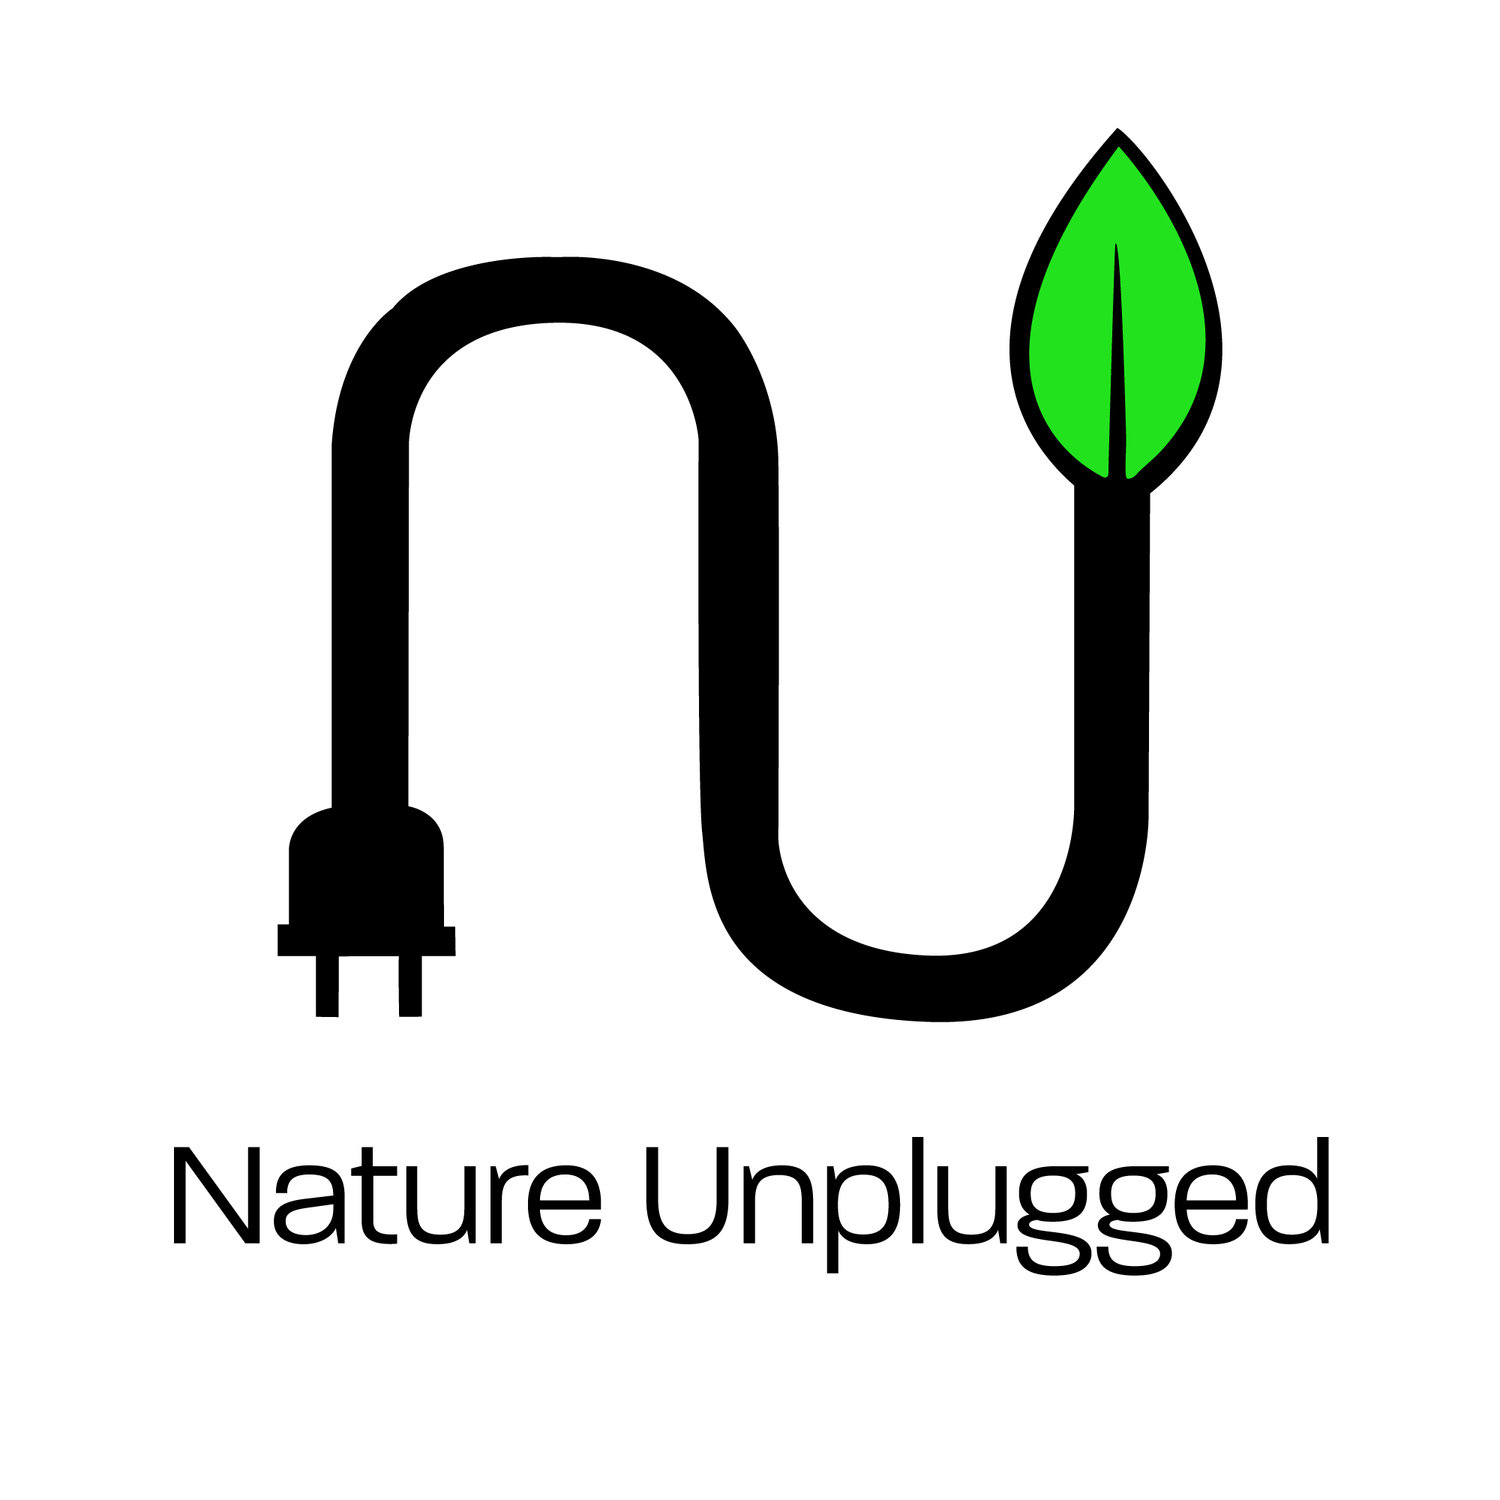 Nature Unplugged